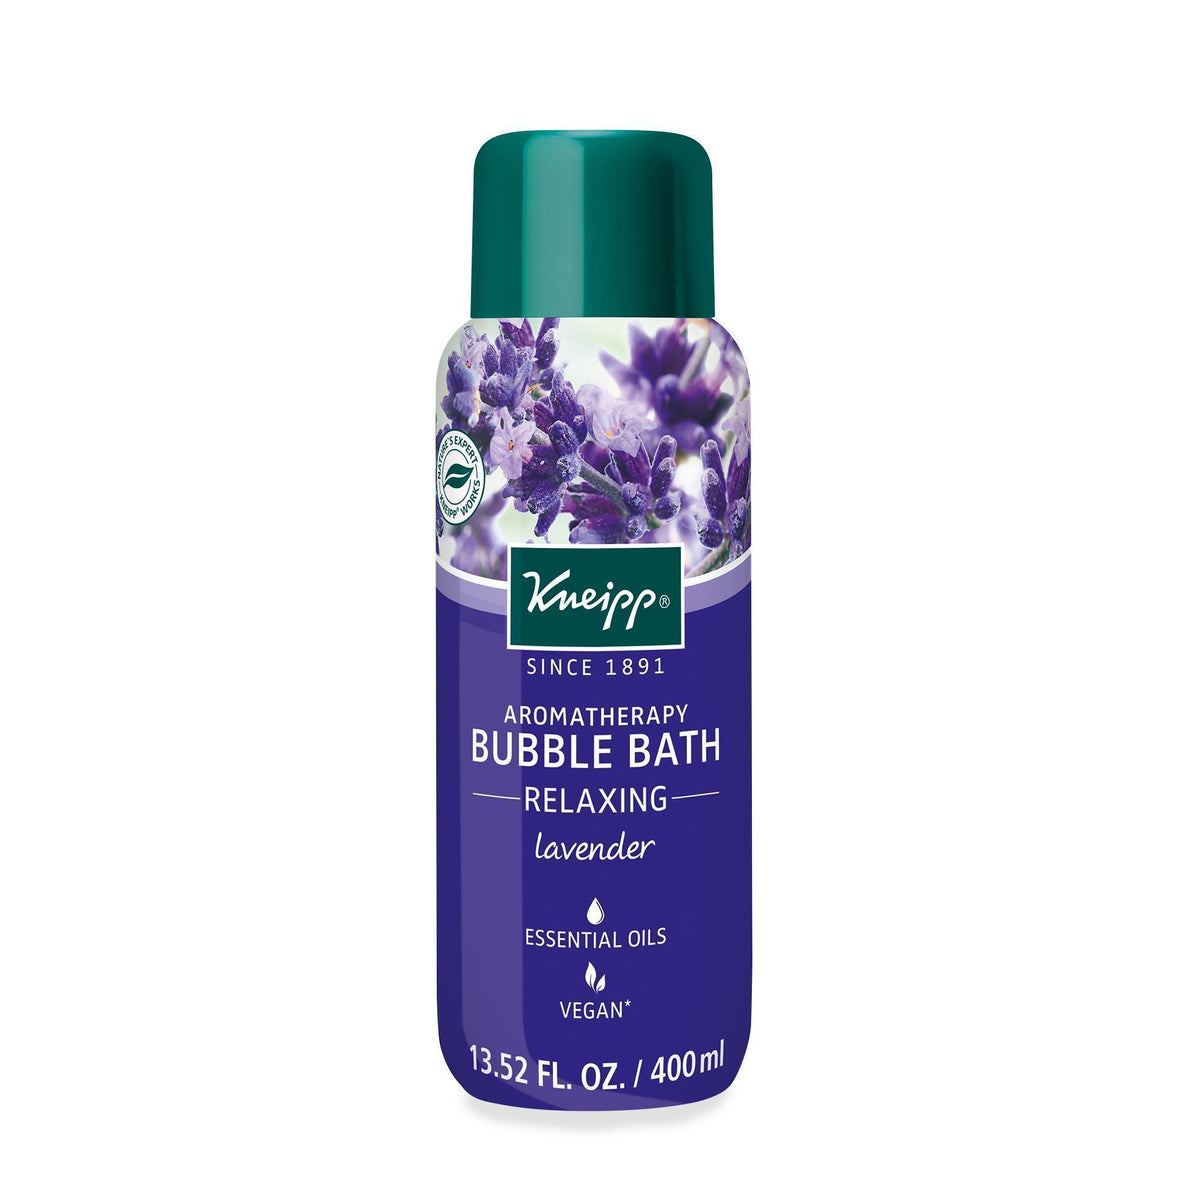 Kneipp Relaxing Bubble Bath 13.52 Fl. Oz.